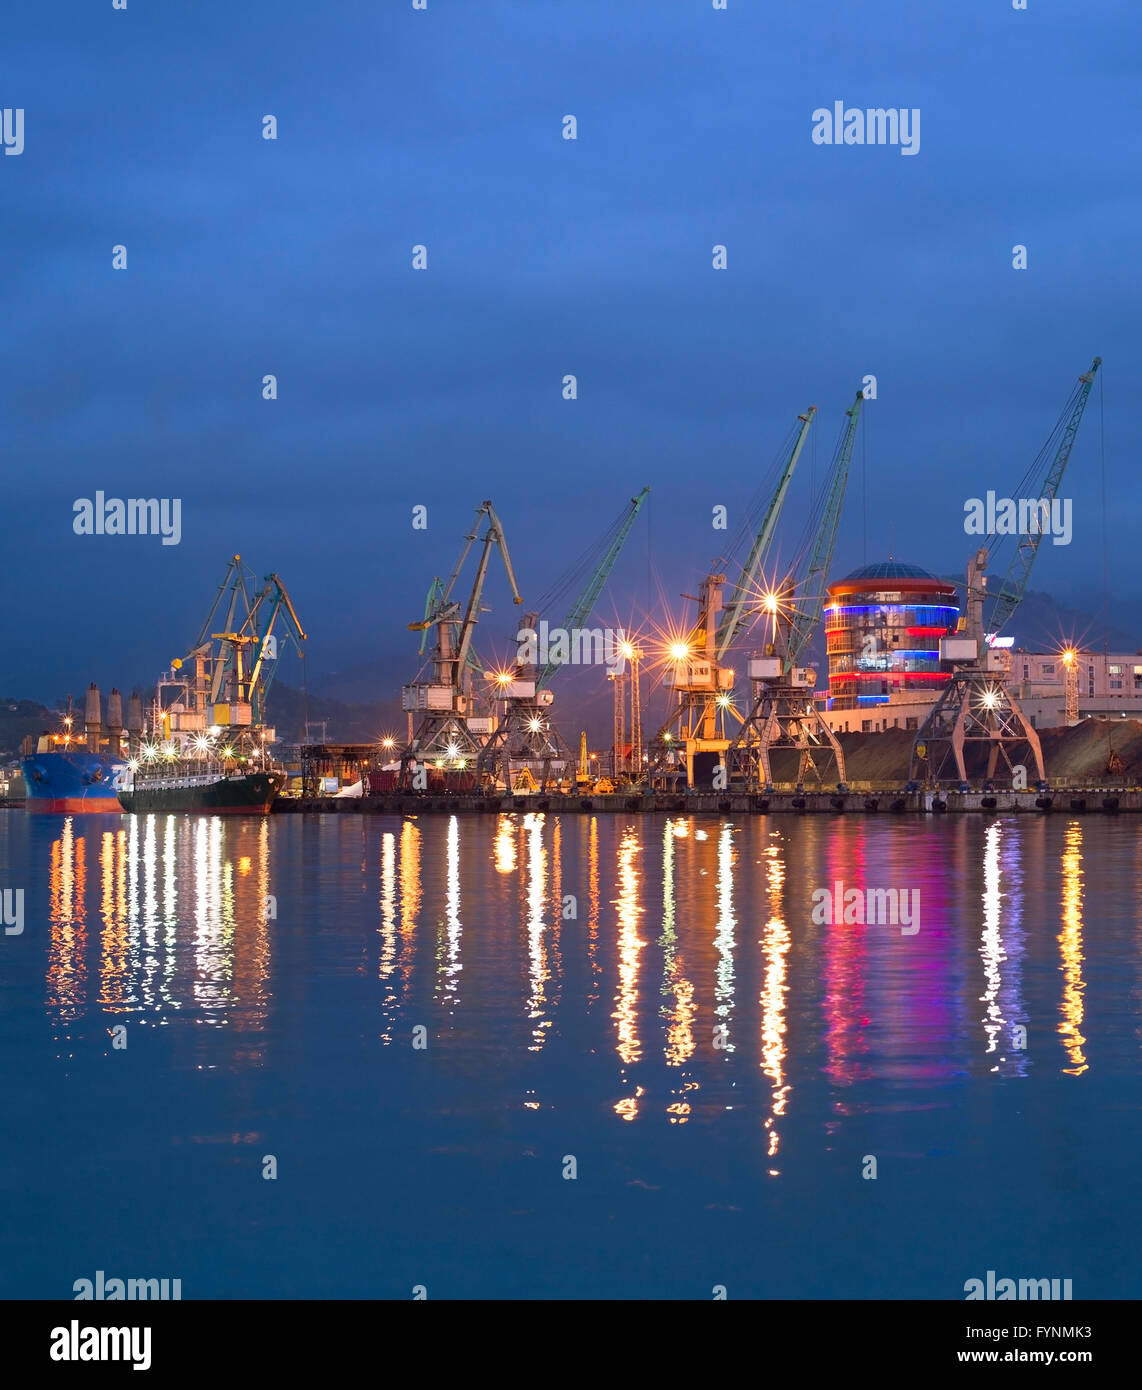 Industrial sea port with reflection in the water. Batumi, Georgia - Stock Image